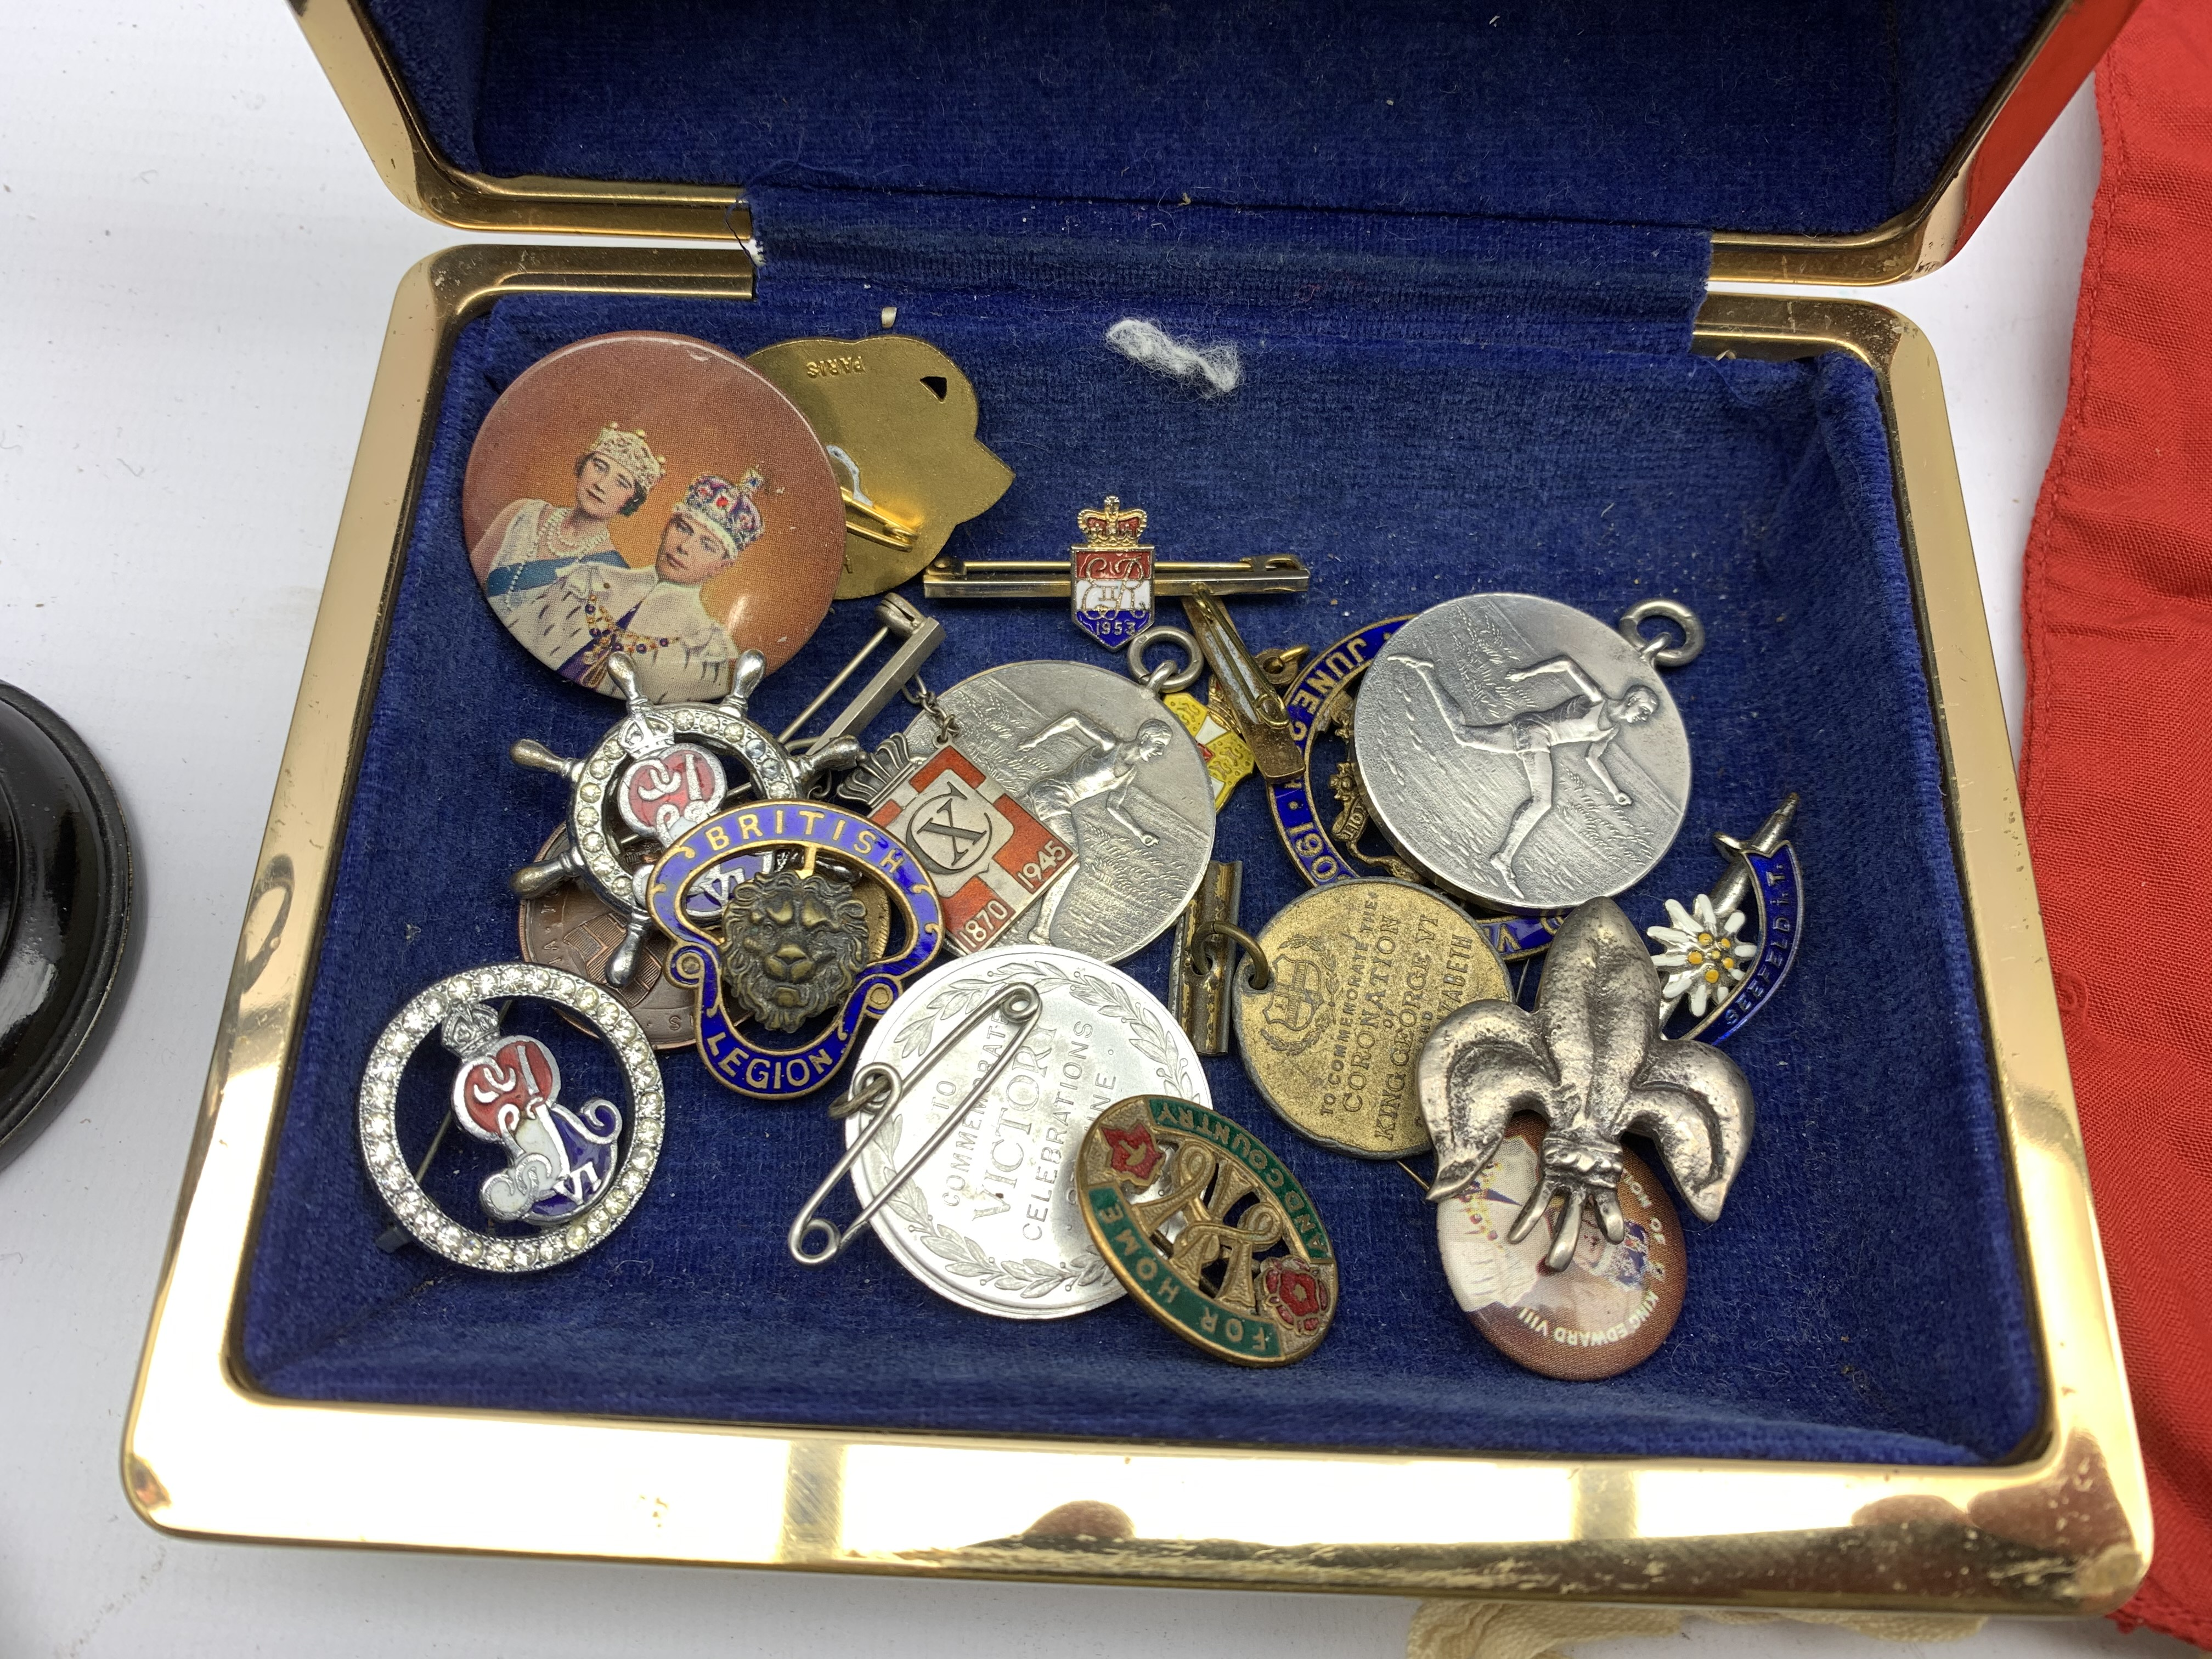 Part set of six gilt metal buttons by Firmin & Sons with lion and shell crest, boxed, collection of - Image 8 of 9